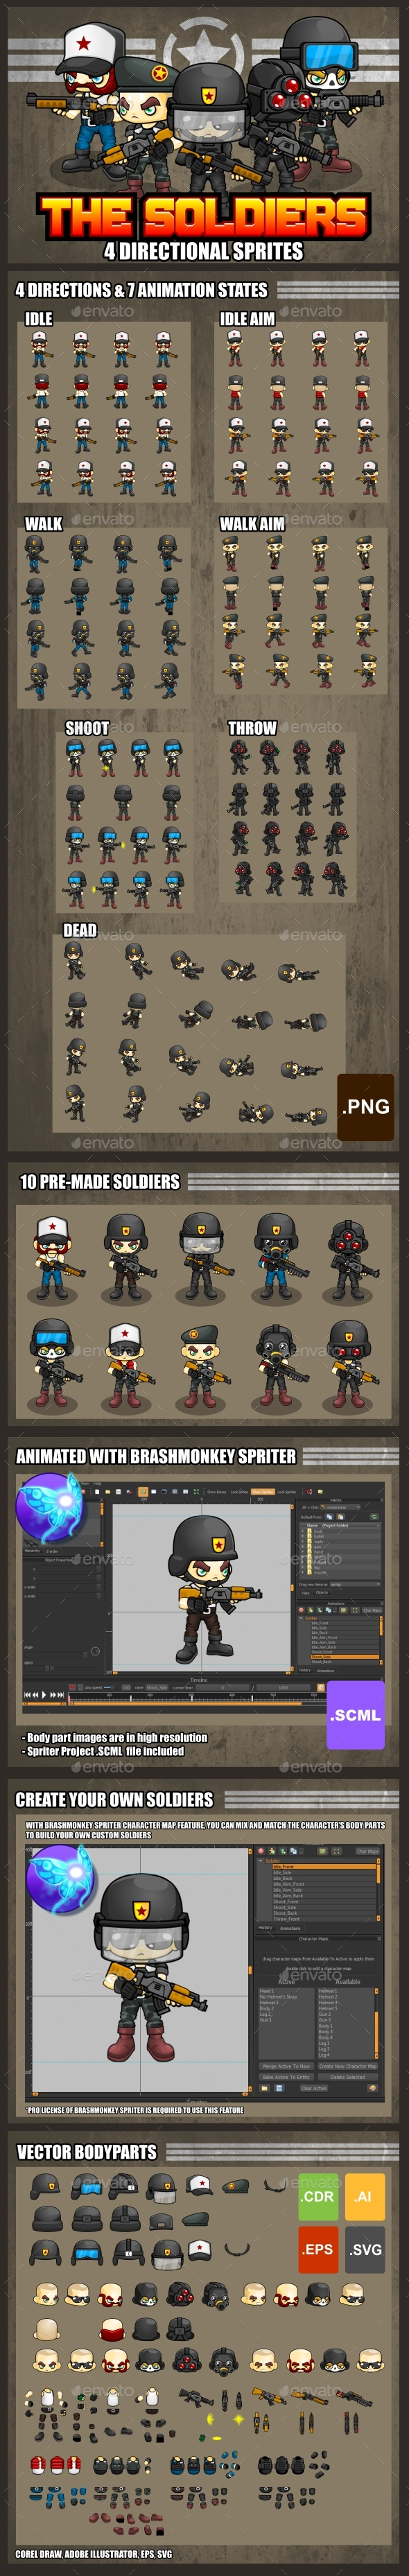 The Soldiers - Game Sprites - Sprites Game Assets